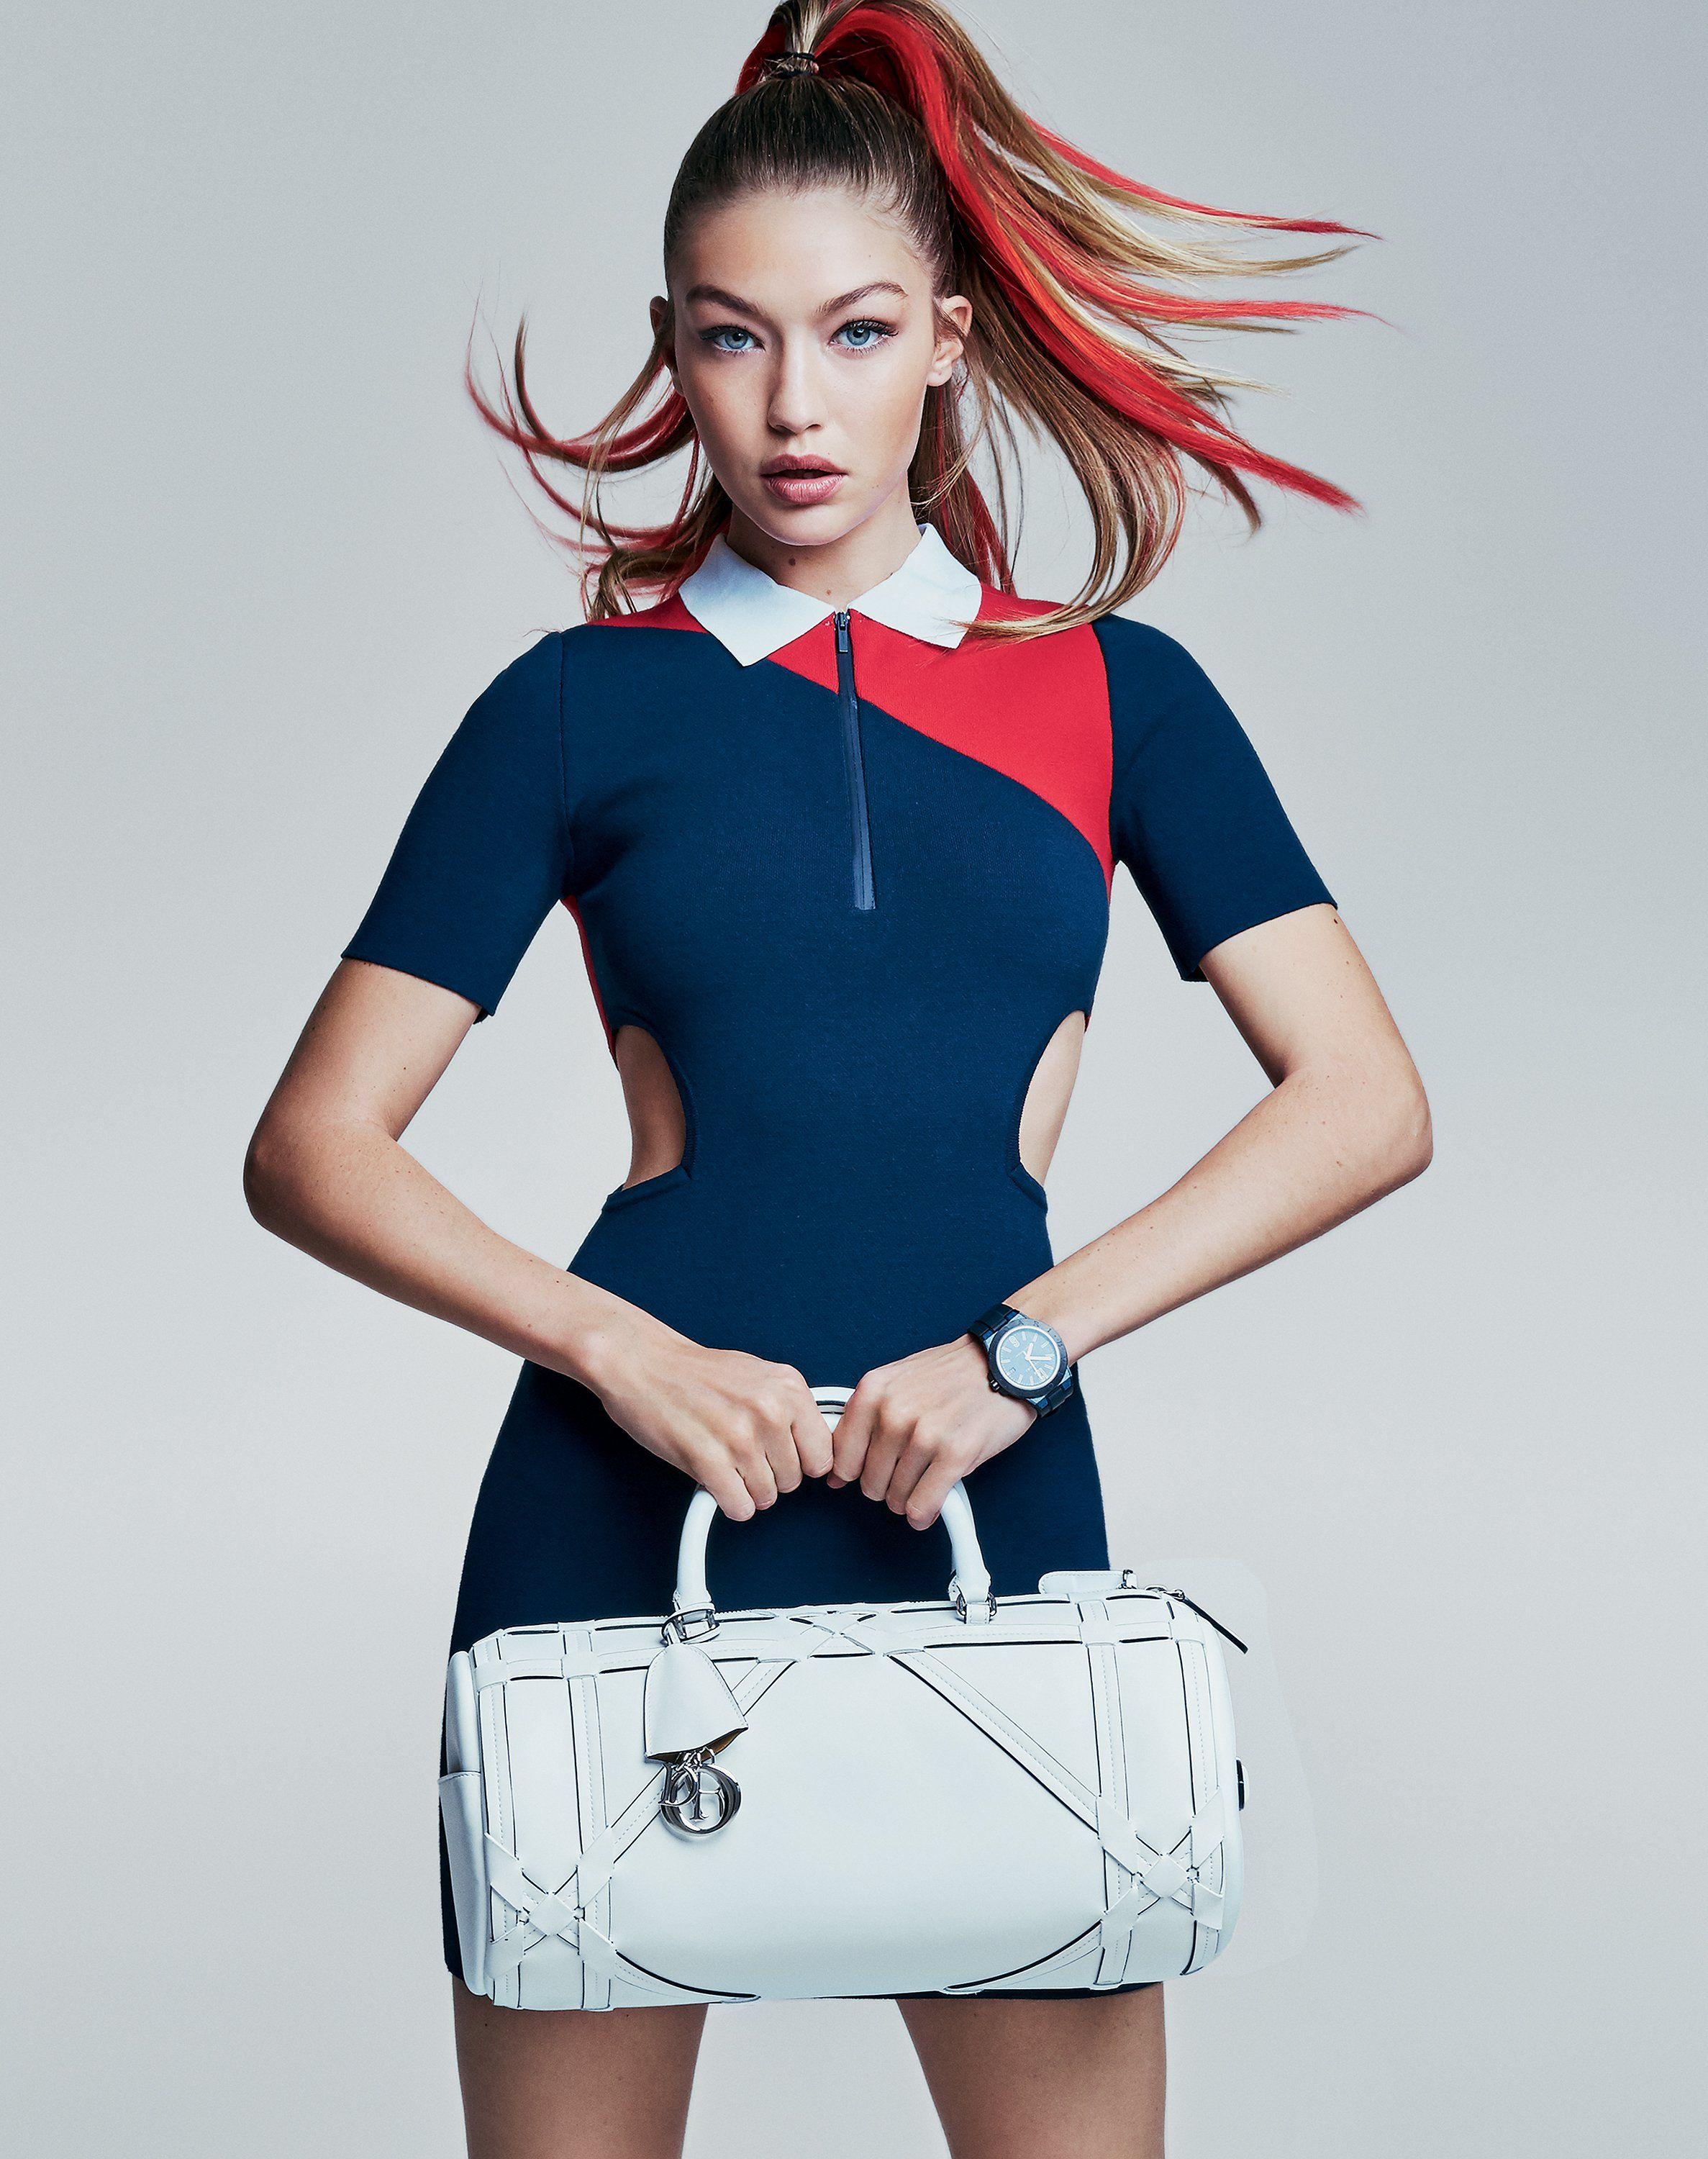 Gigi Hadid and Lily Aldridge in the Best Sporty, Bold ...